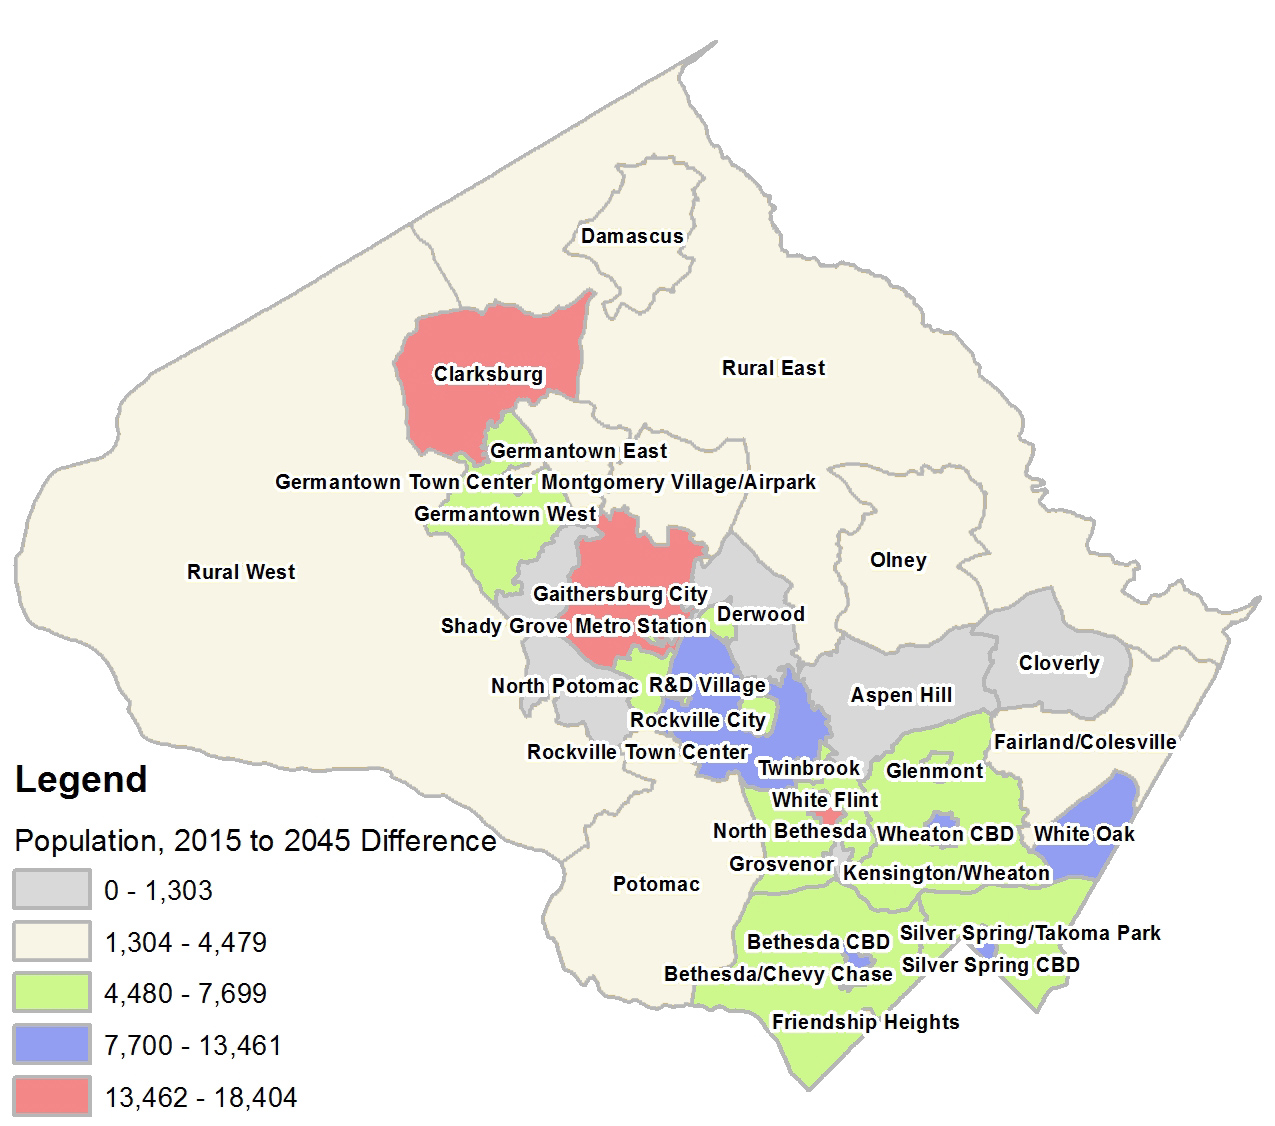 Population Change Round 9.0 - 2015 to 2045